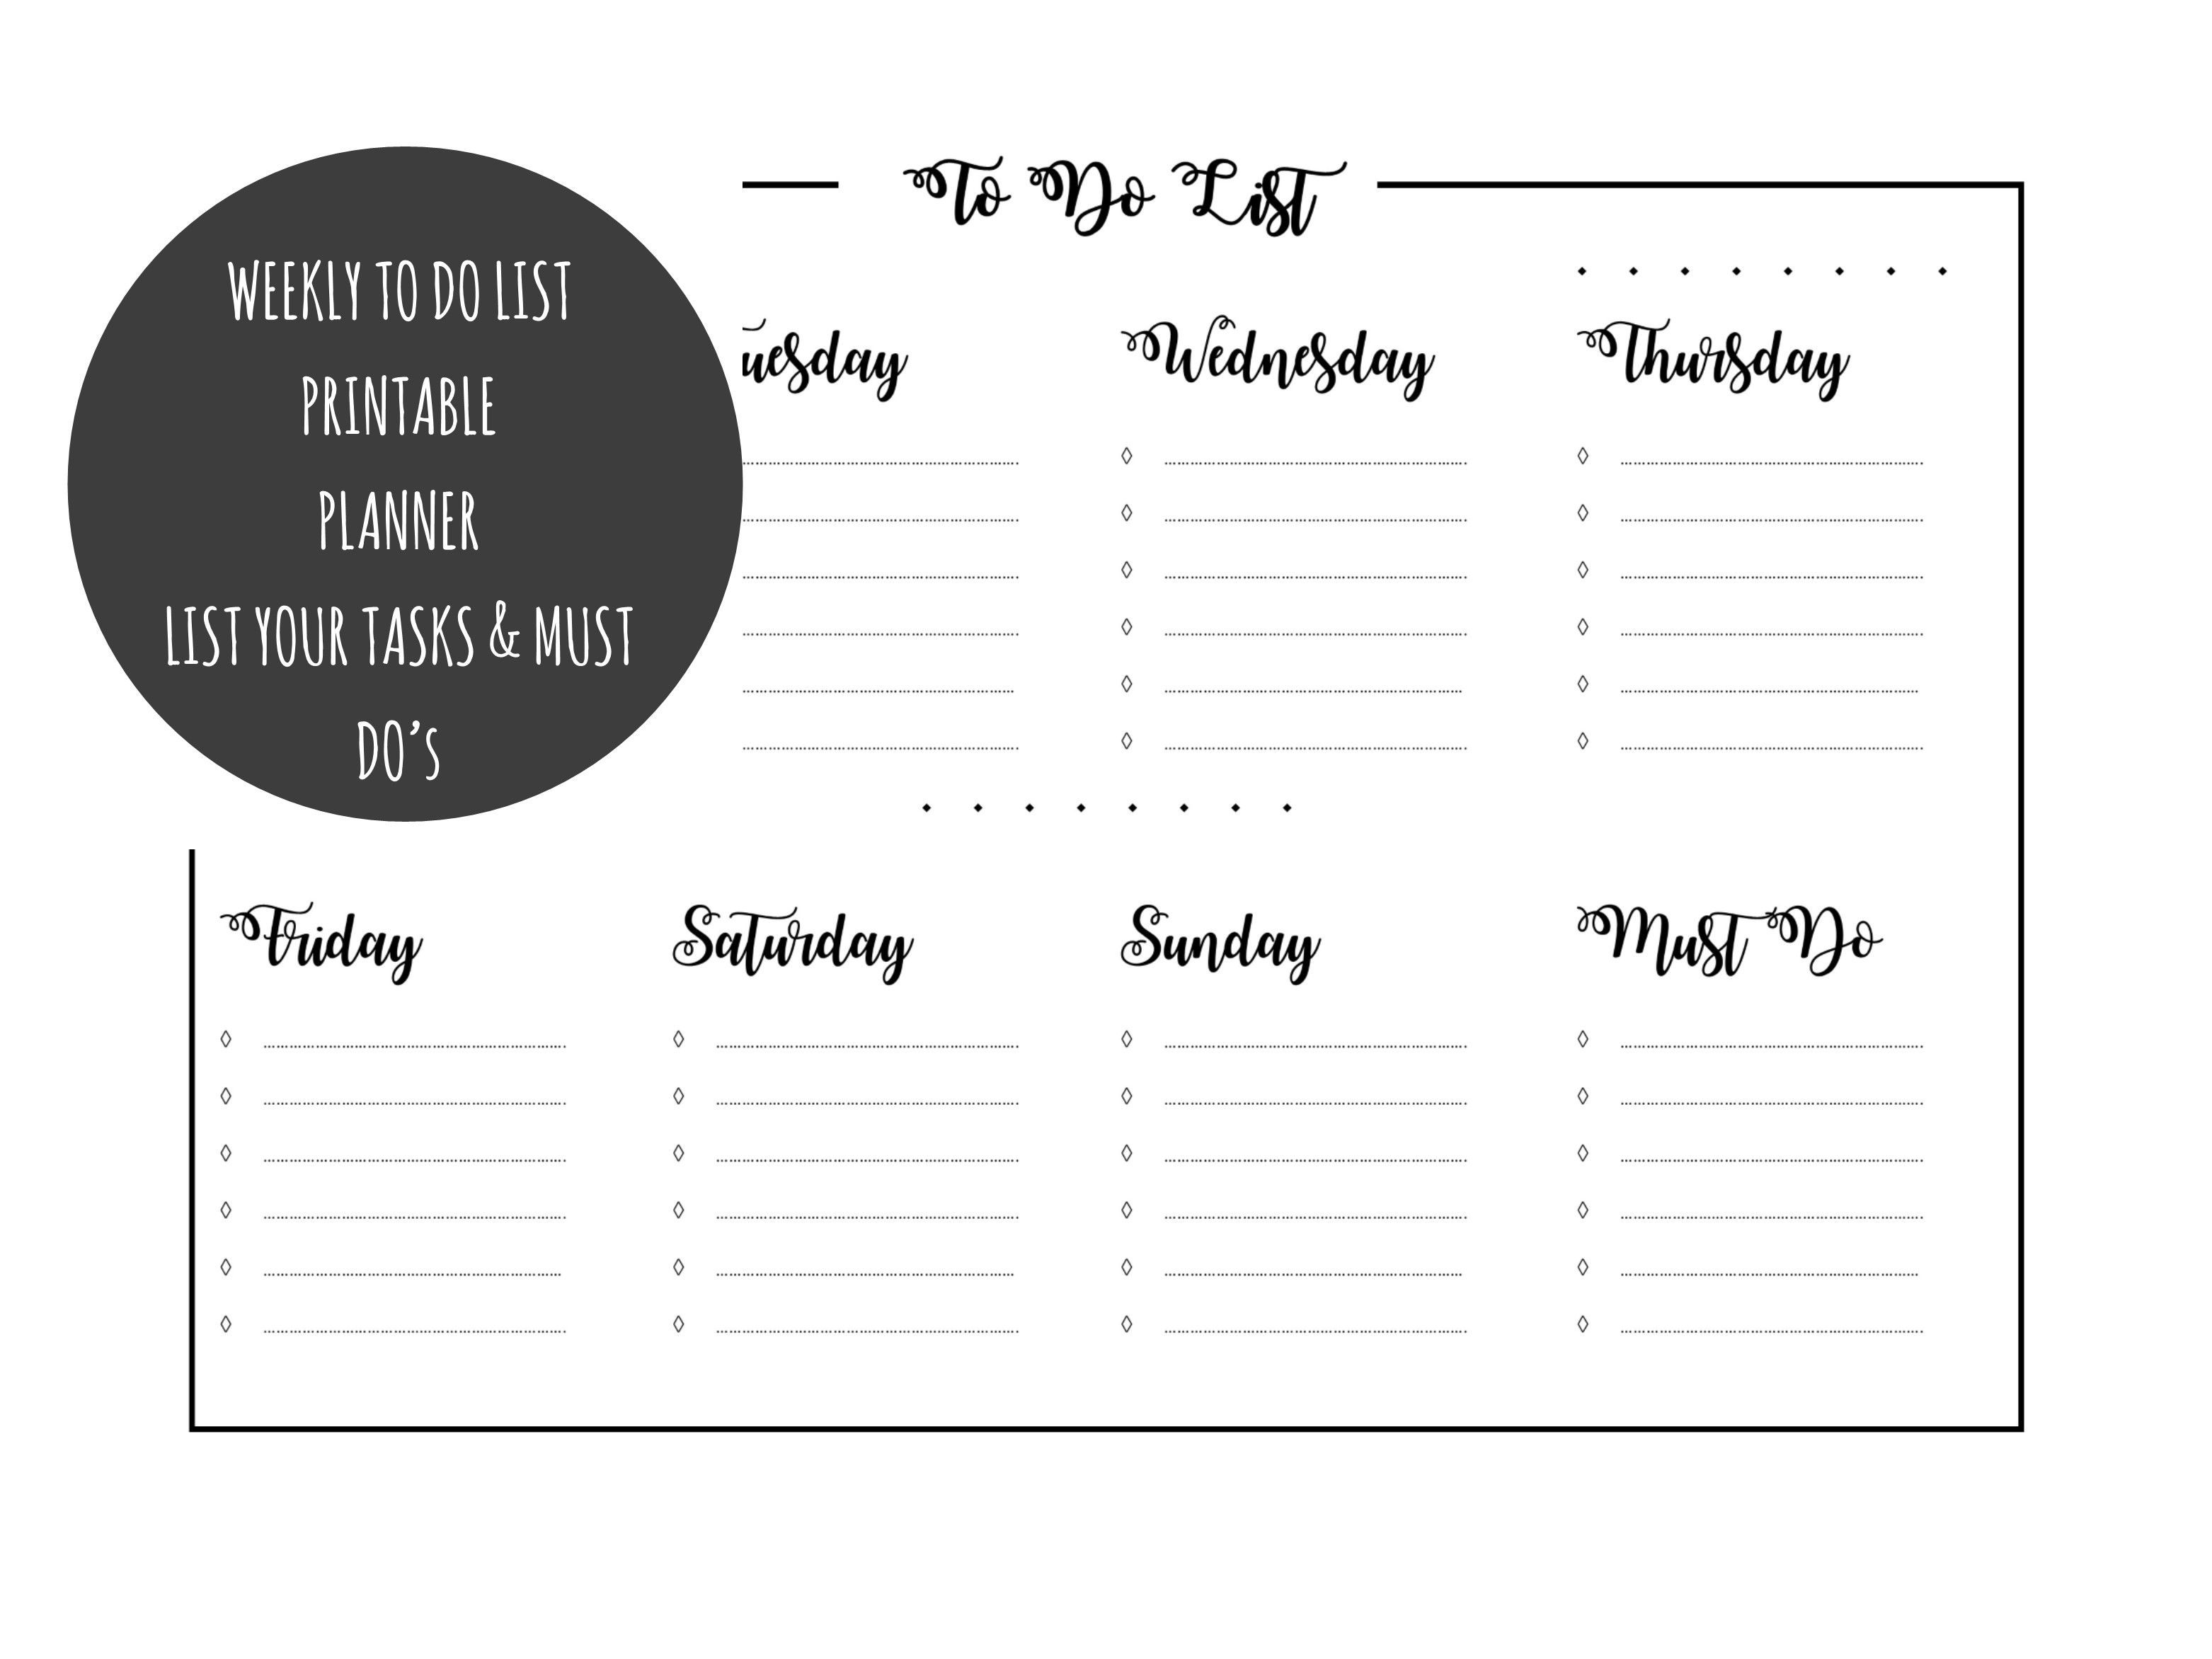 Weekly Printable To Do List With Must Do Section And Daily